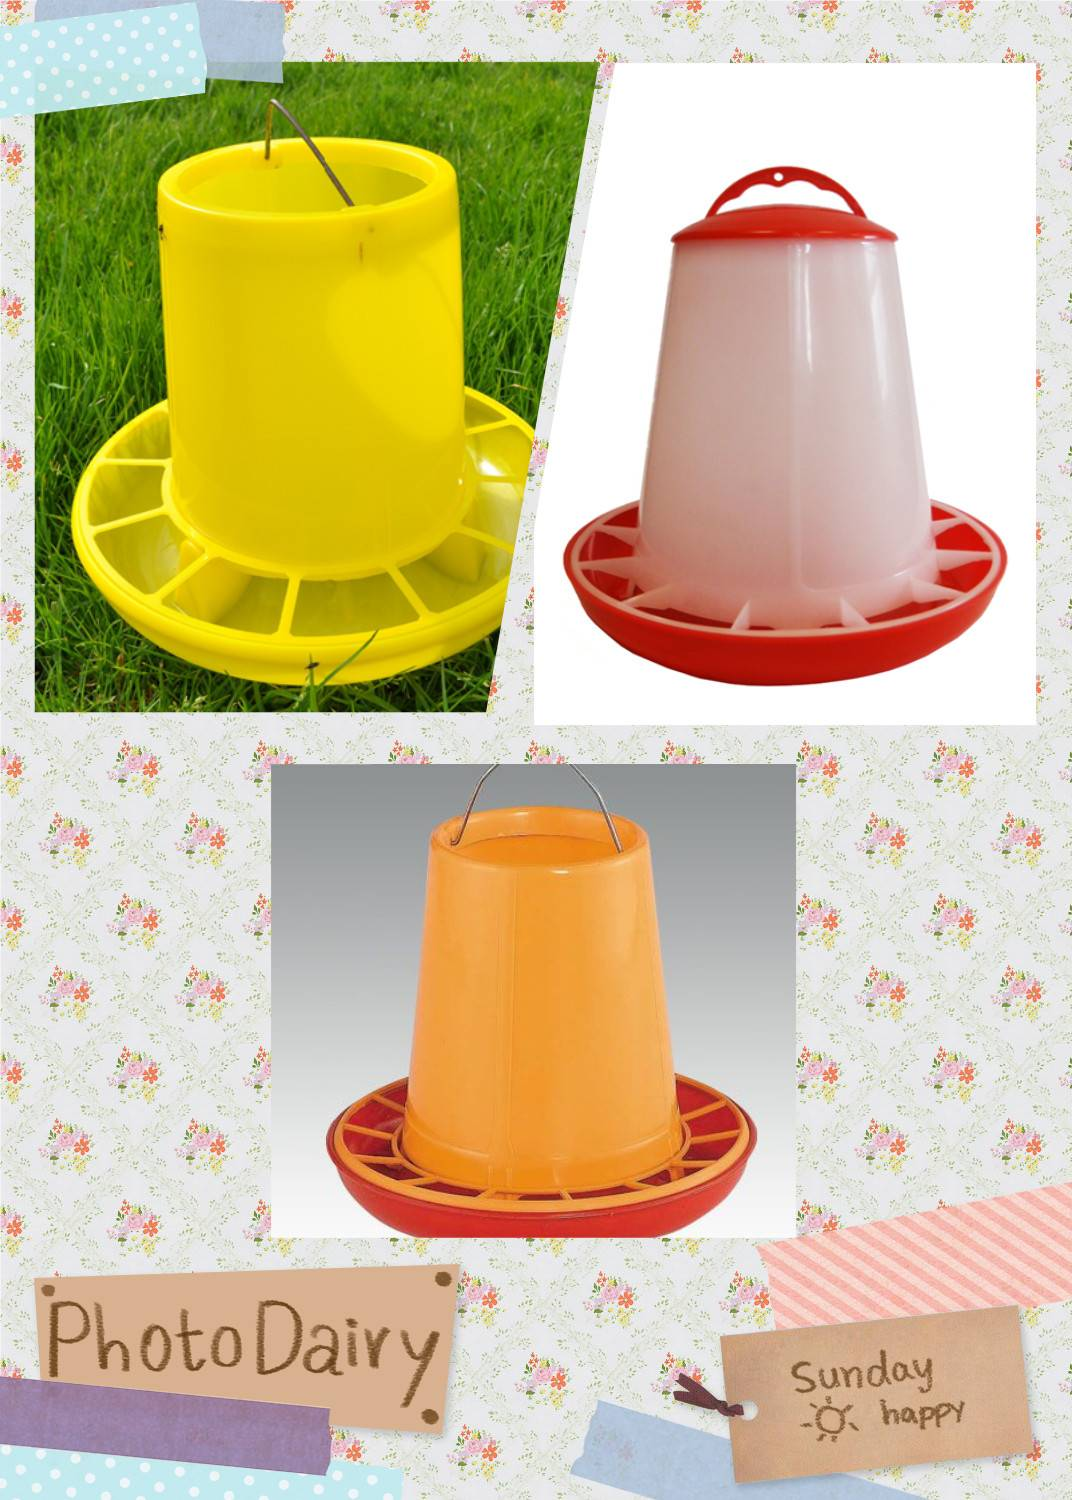 3kg best selling and high quality plastic poultry feeder for chicken